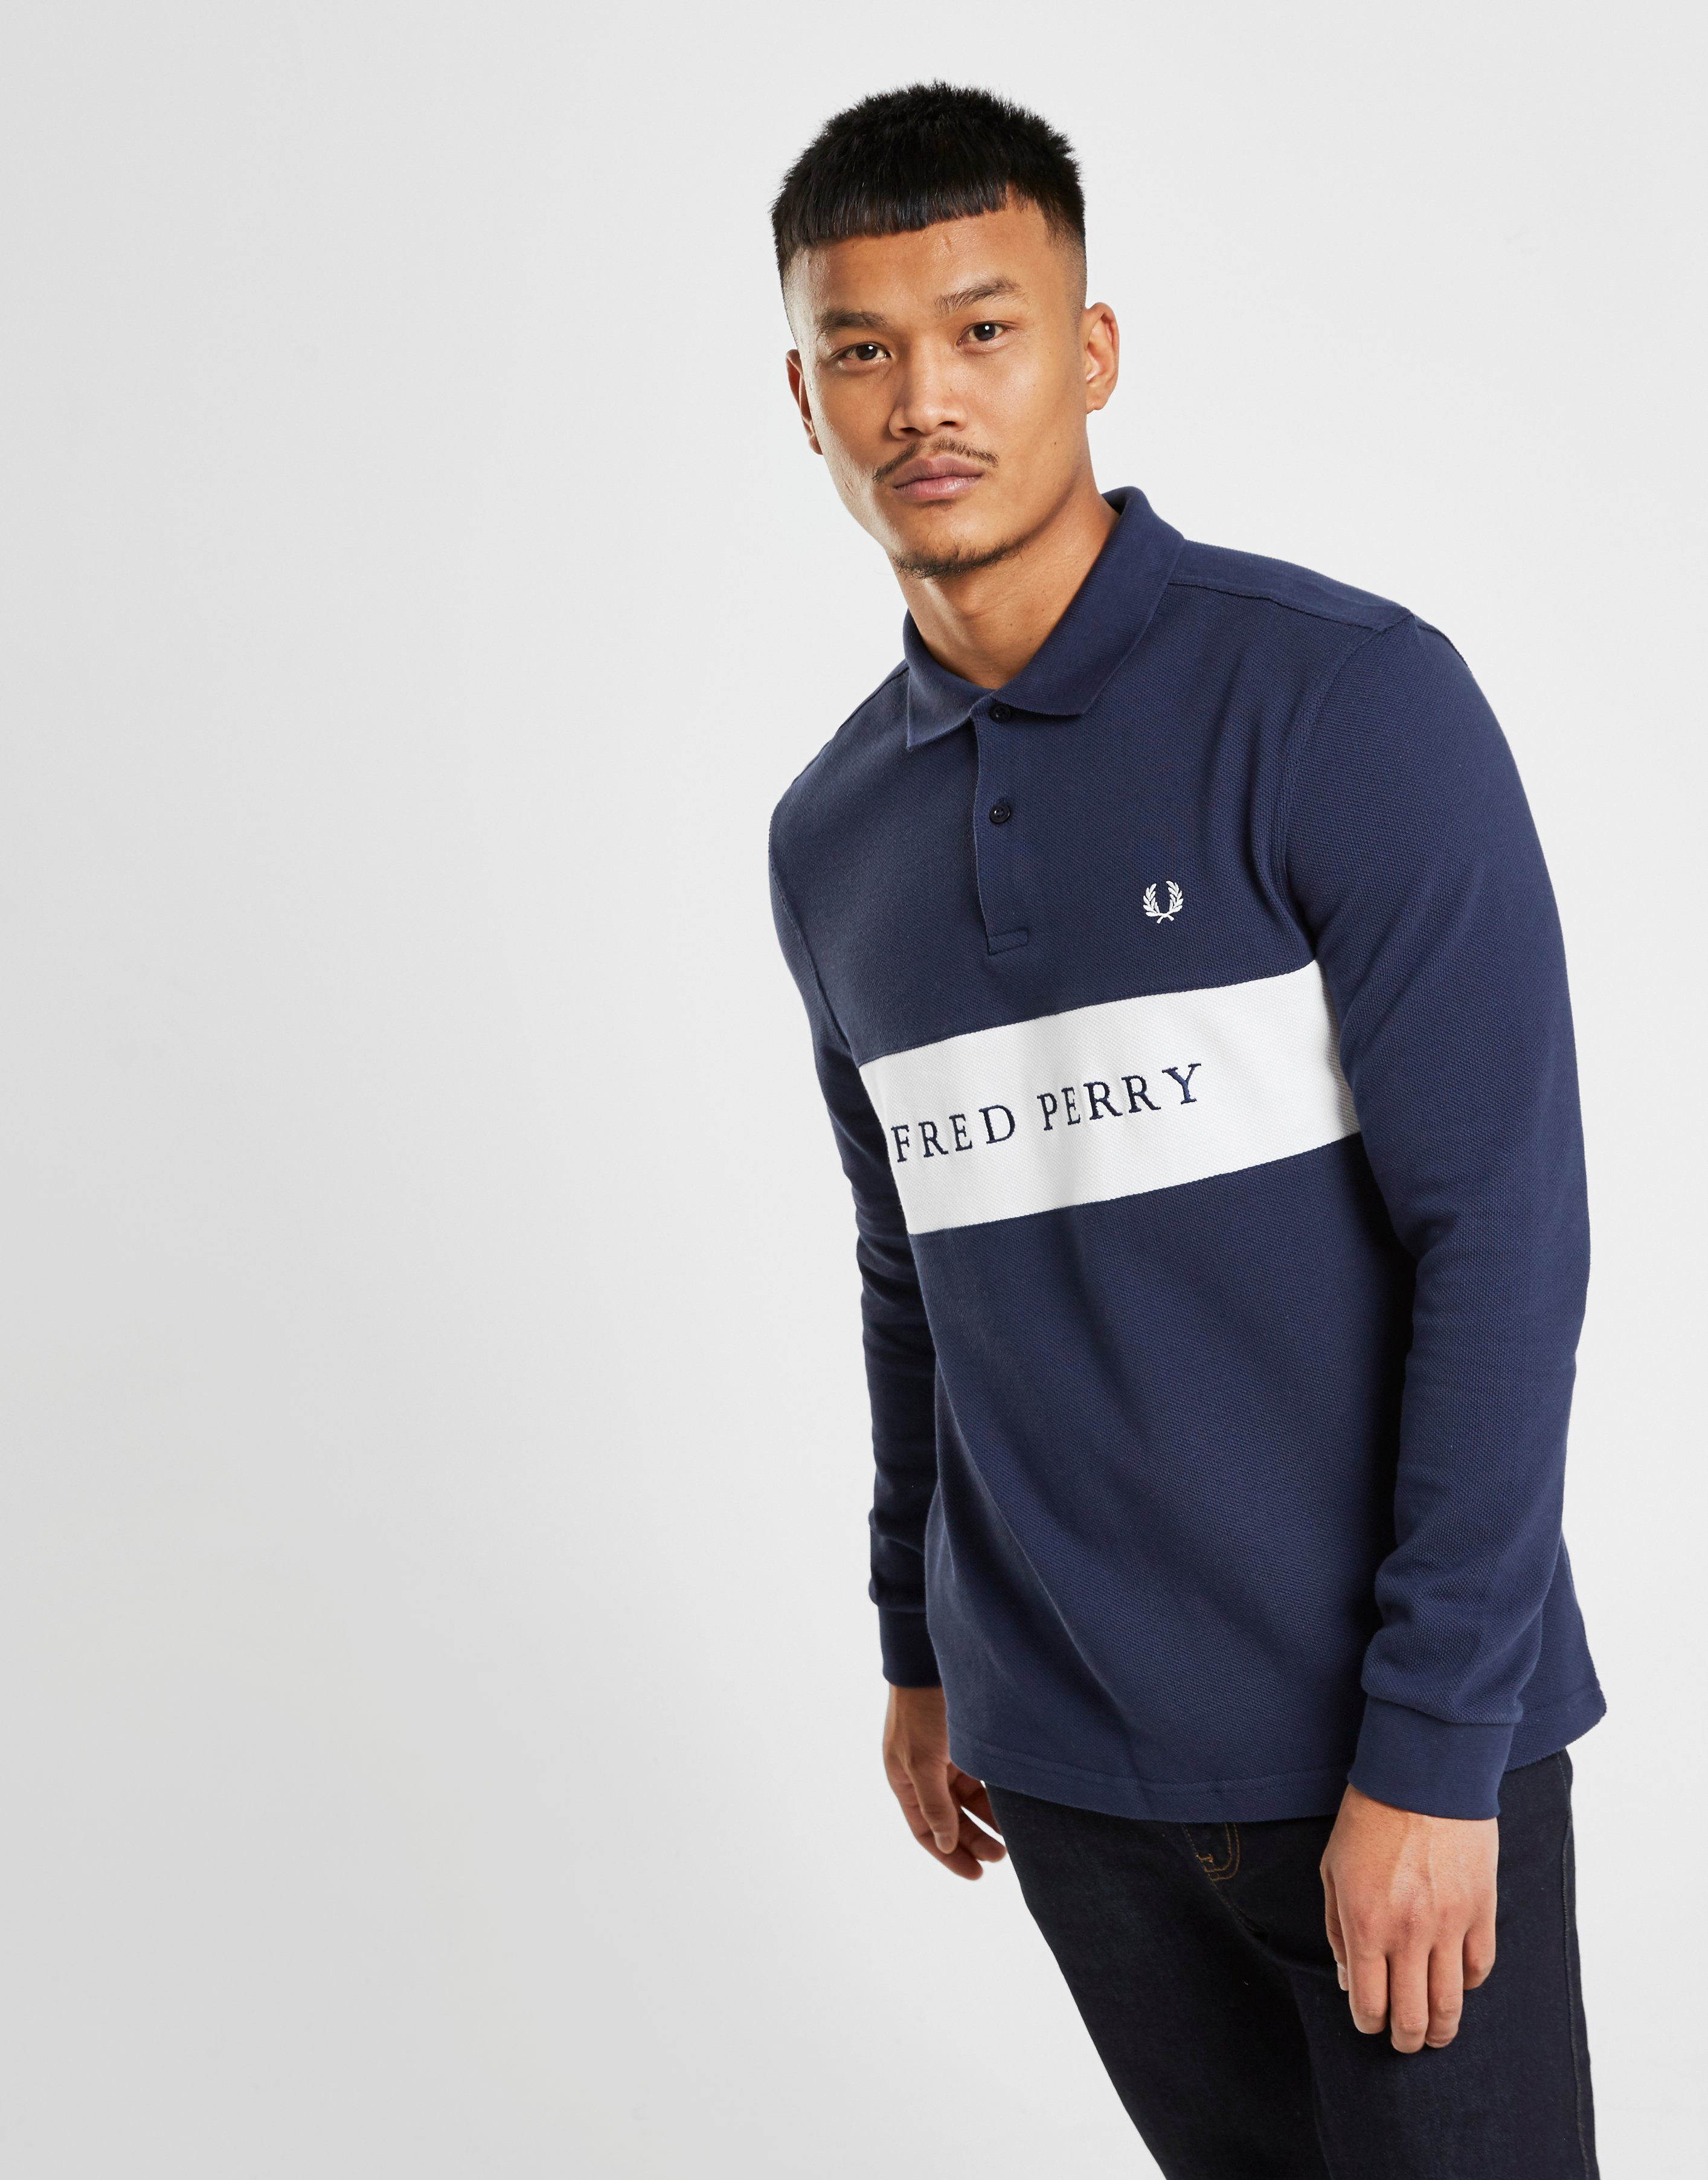 Fred Perry Long Sleeve Panel Polo Shirt Jd Sports